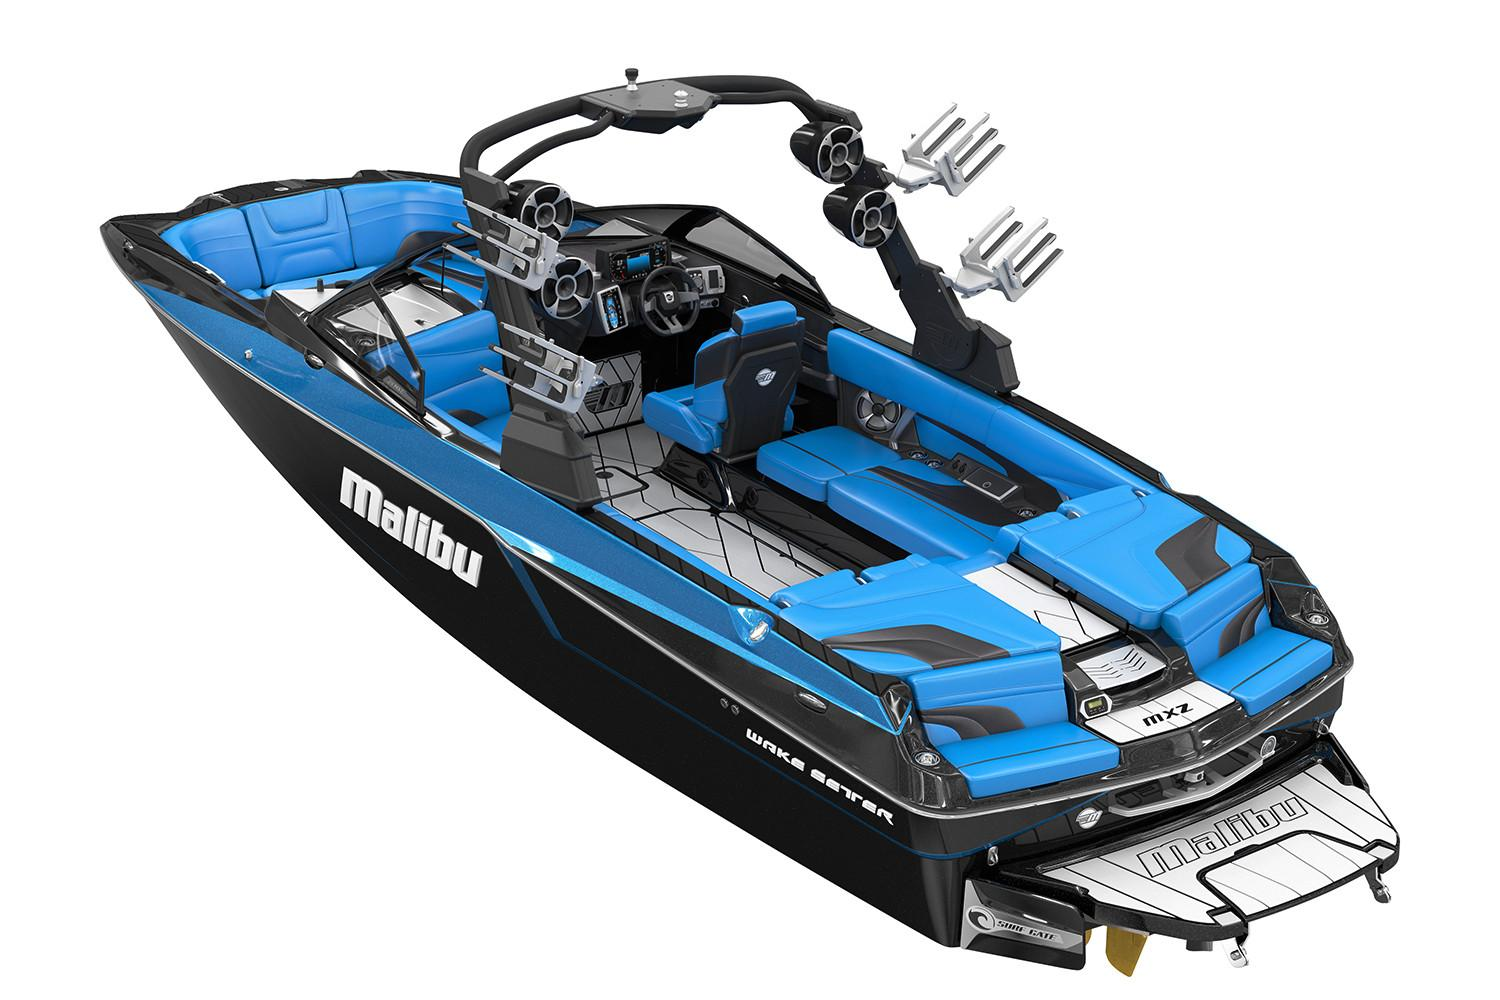 New 2020 Malibu Wakesetter 24 Mxz Power Boats Inboard In Rapid City Sd Stock Number